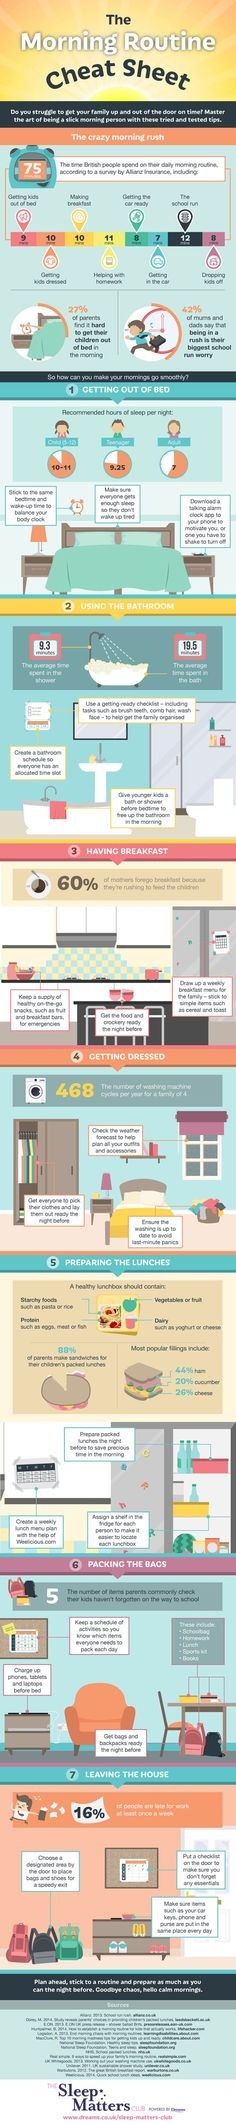 Your Morning Routine: infographic